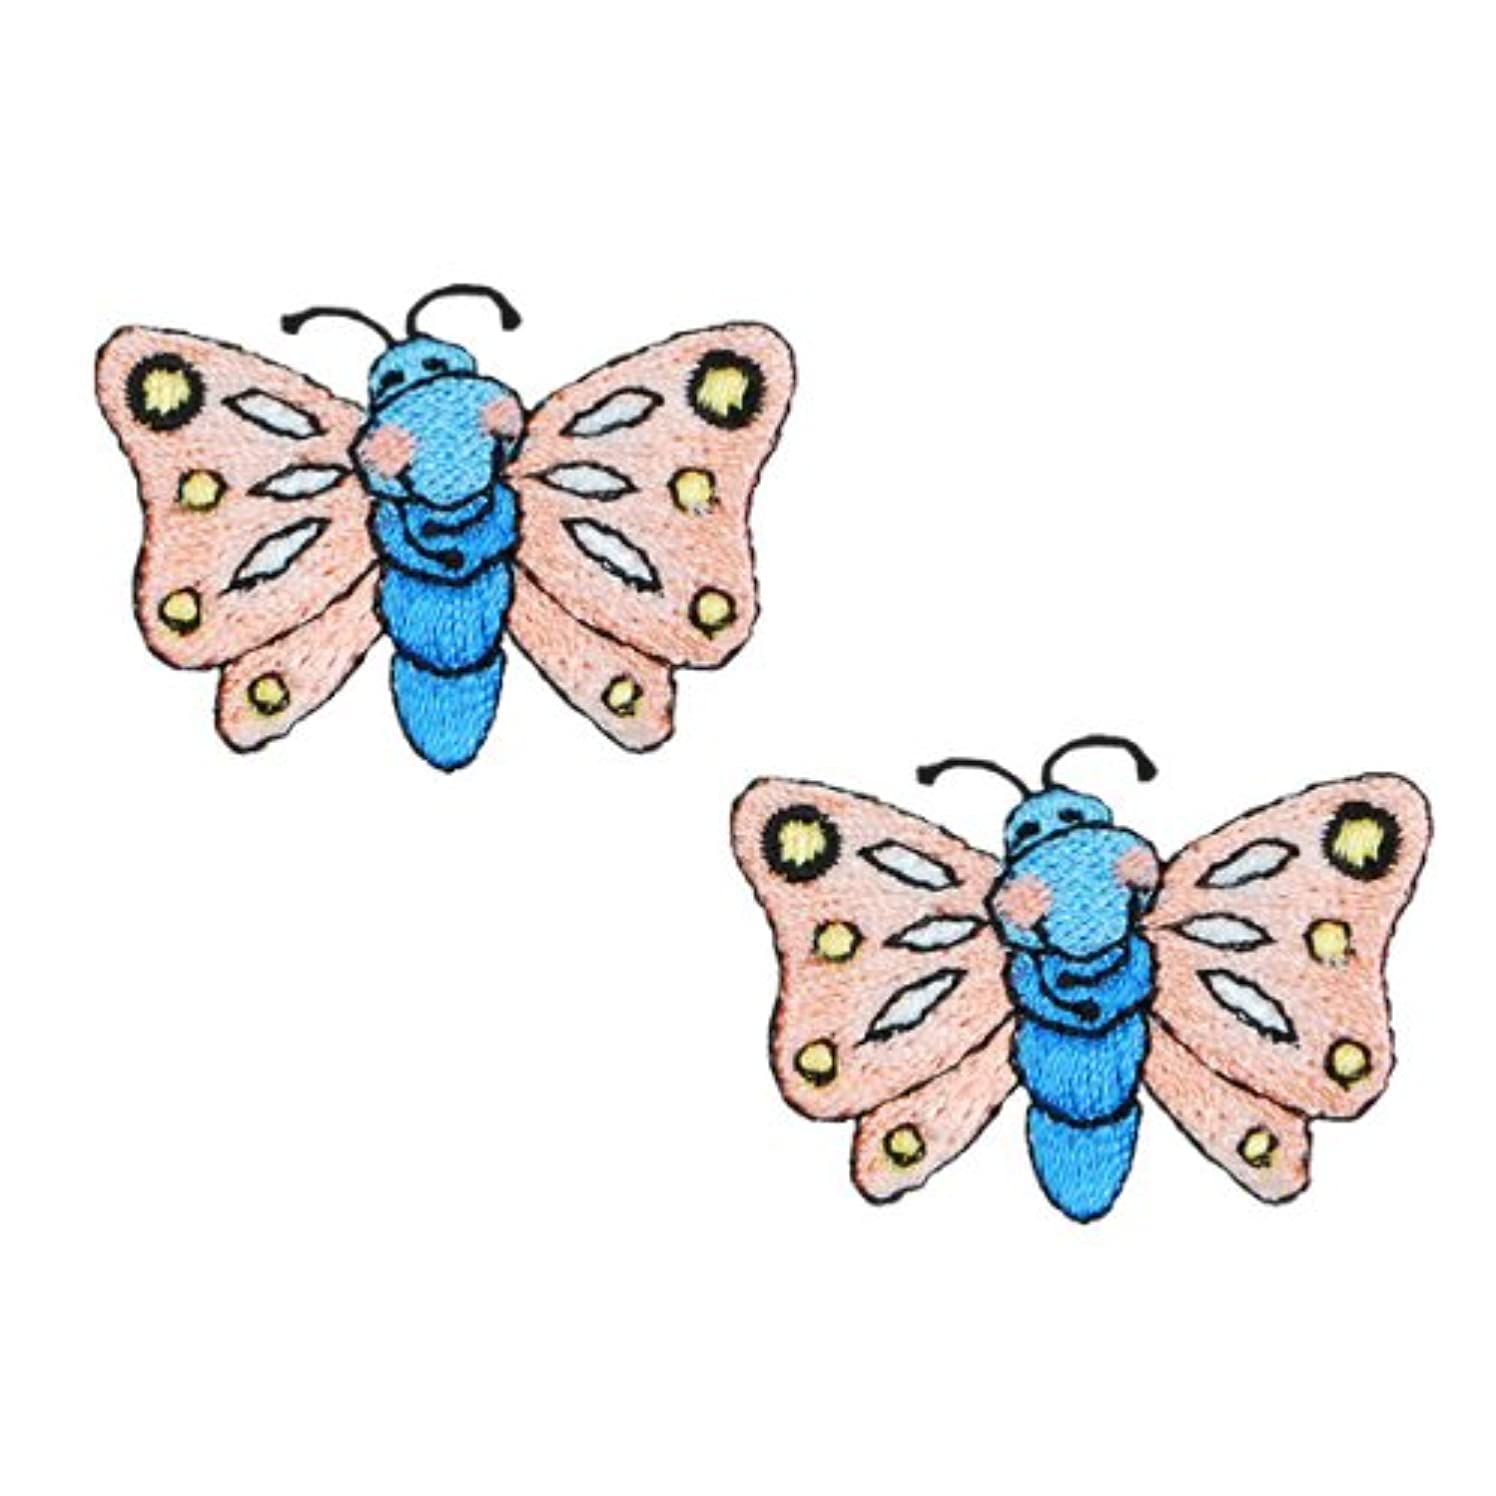 Expo Iron-on Embroidered Applique Patches, BaZooples Flutterbug, 2-Pack